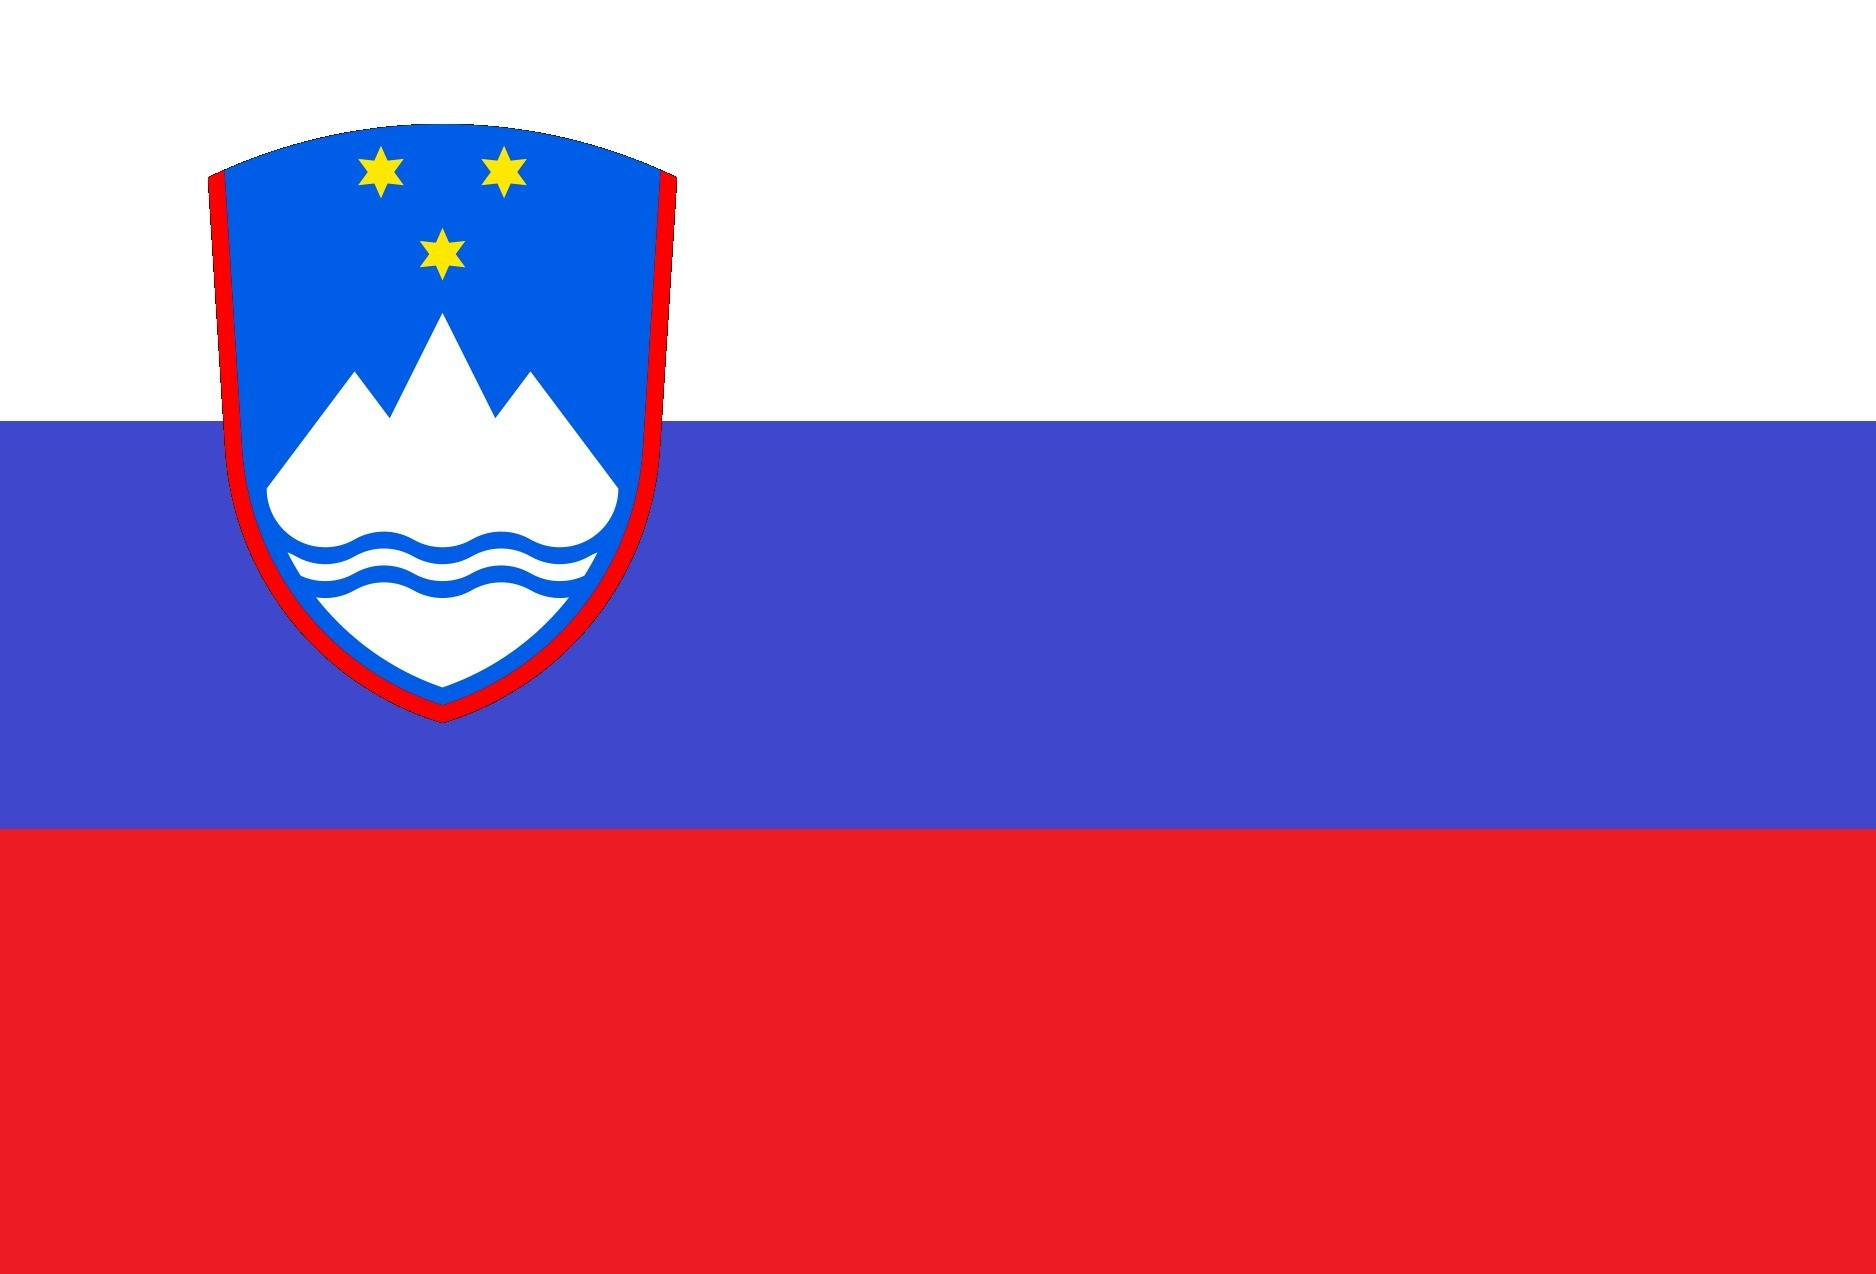 25th June - NRDC-ITA Staff celebrates the 25th Slovenian Statehood Day (Dan drzavnosti)